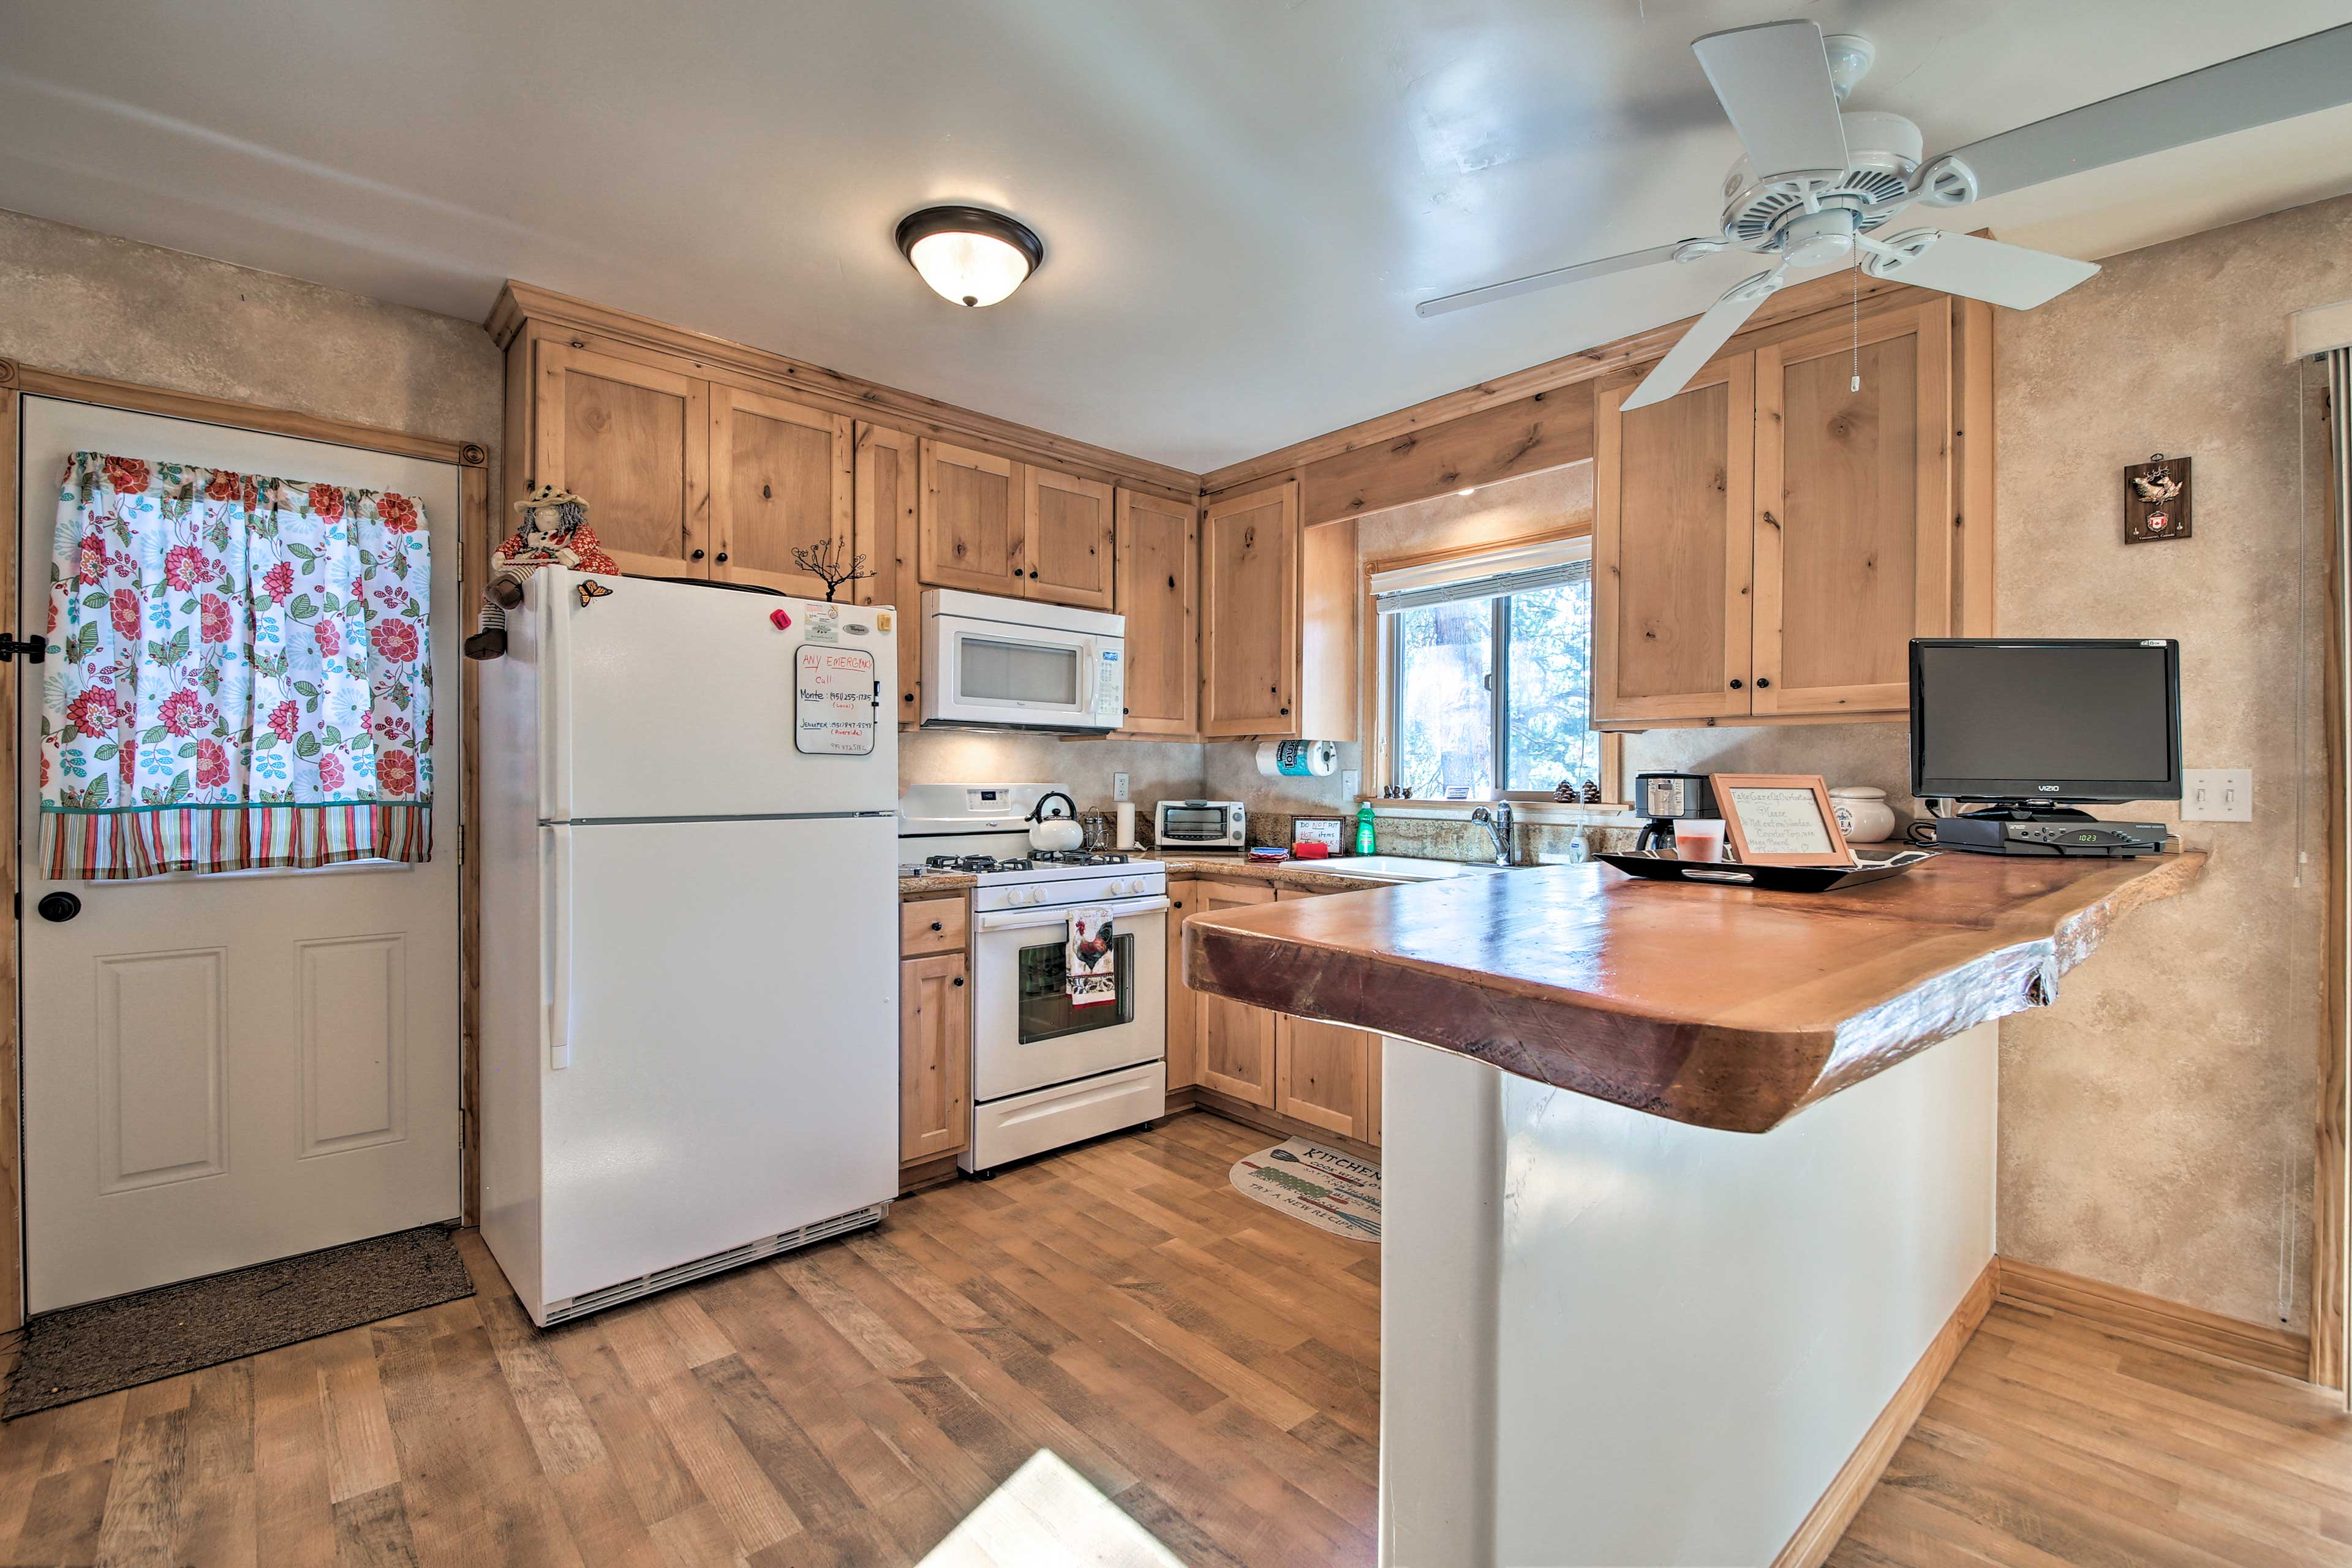 Fall in love with cooking in this fully equipped kitchen!